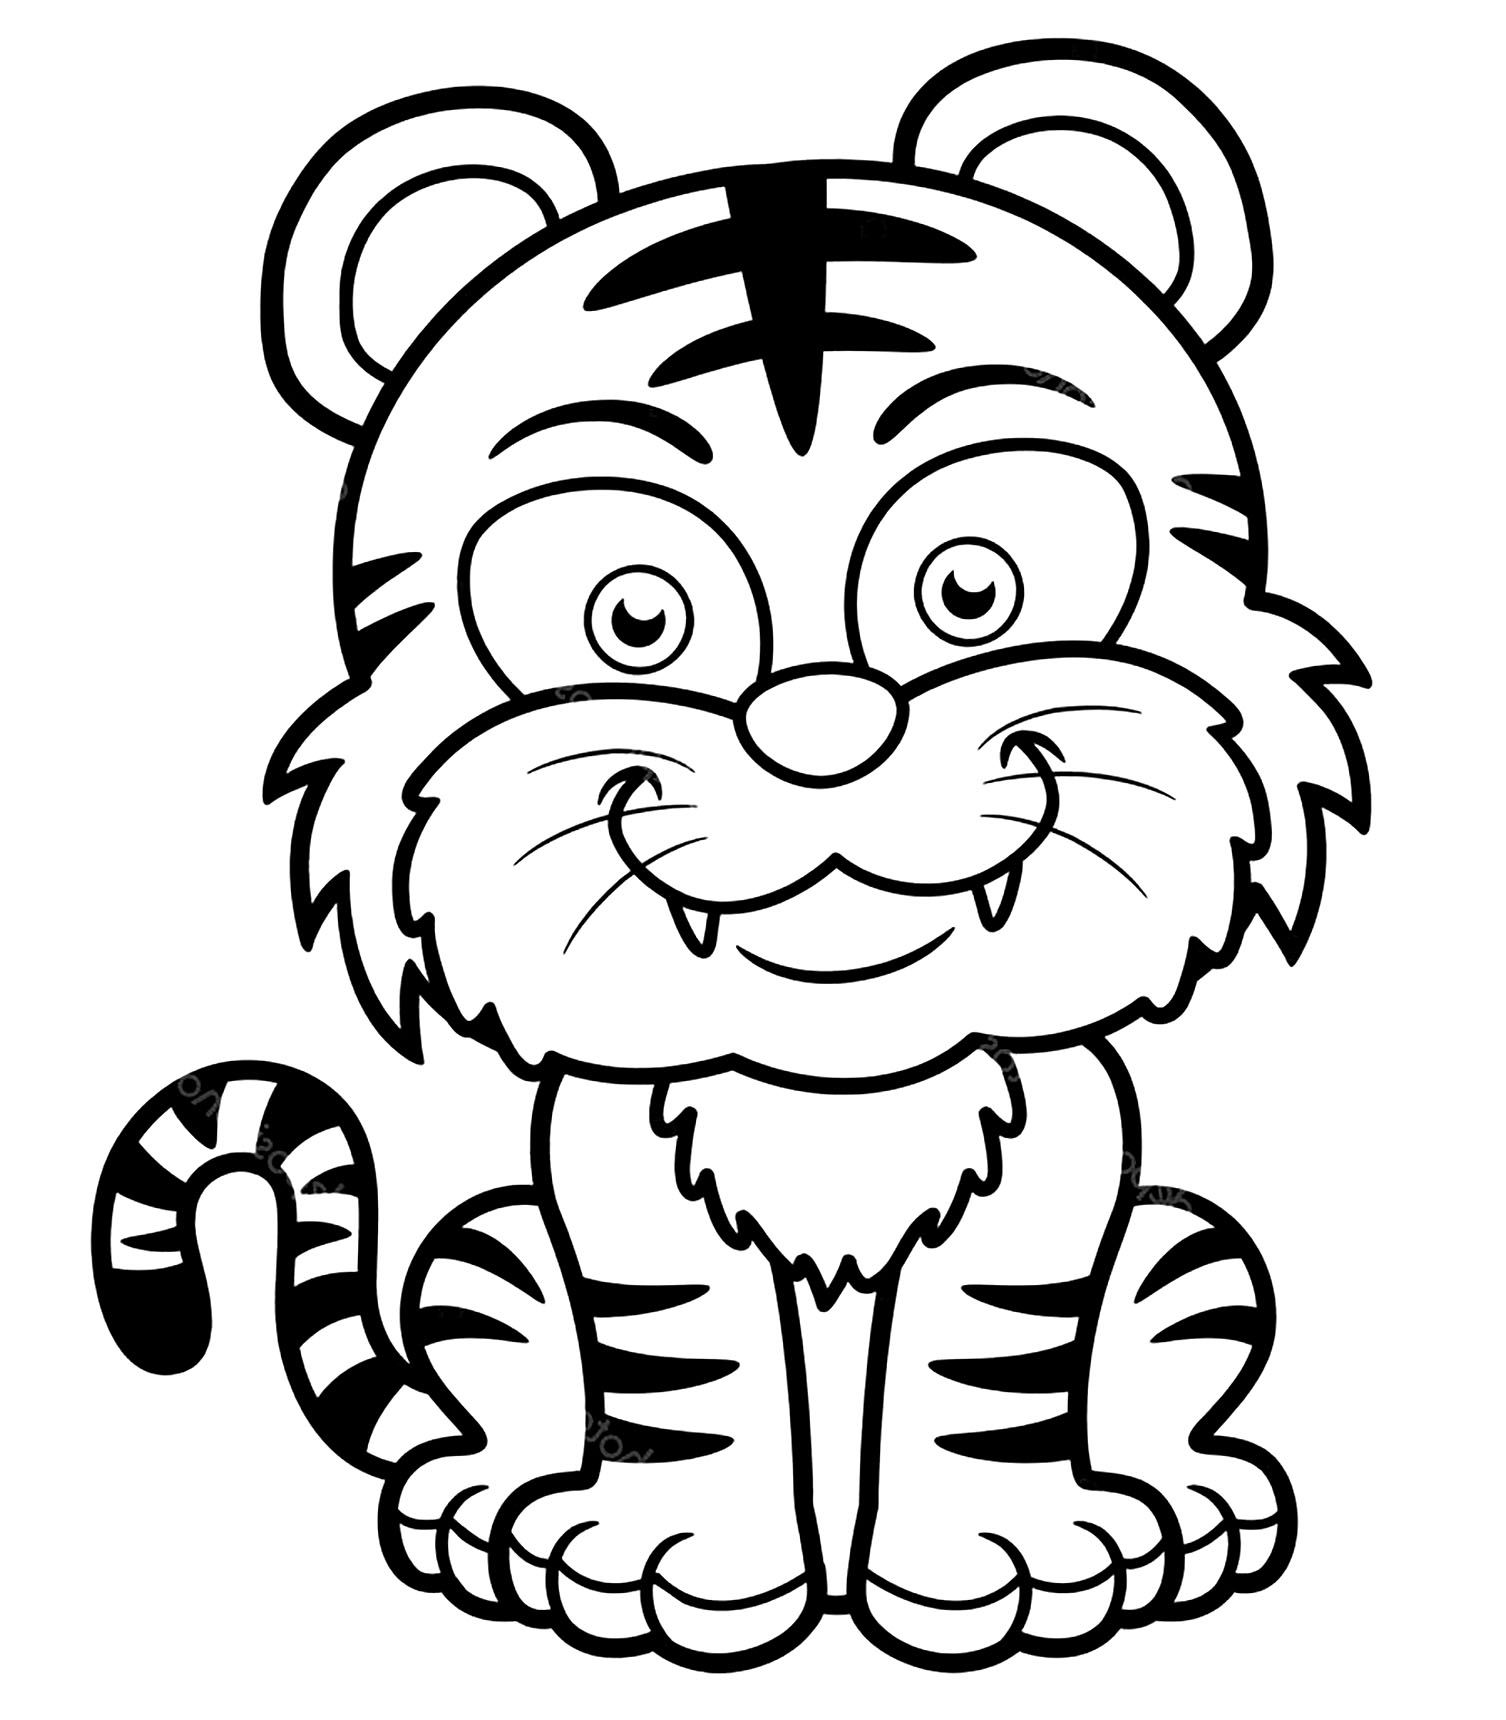 coloring page of tiger free tiger coloring pages page tiger coloring of